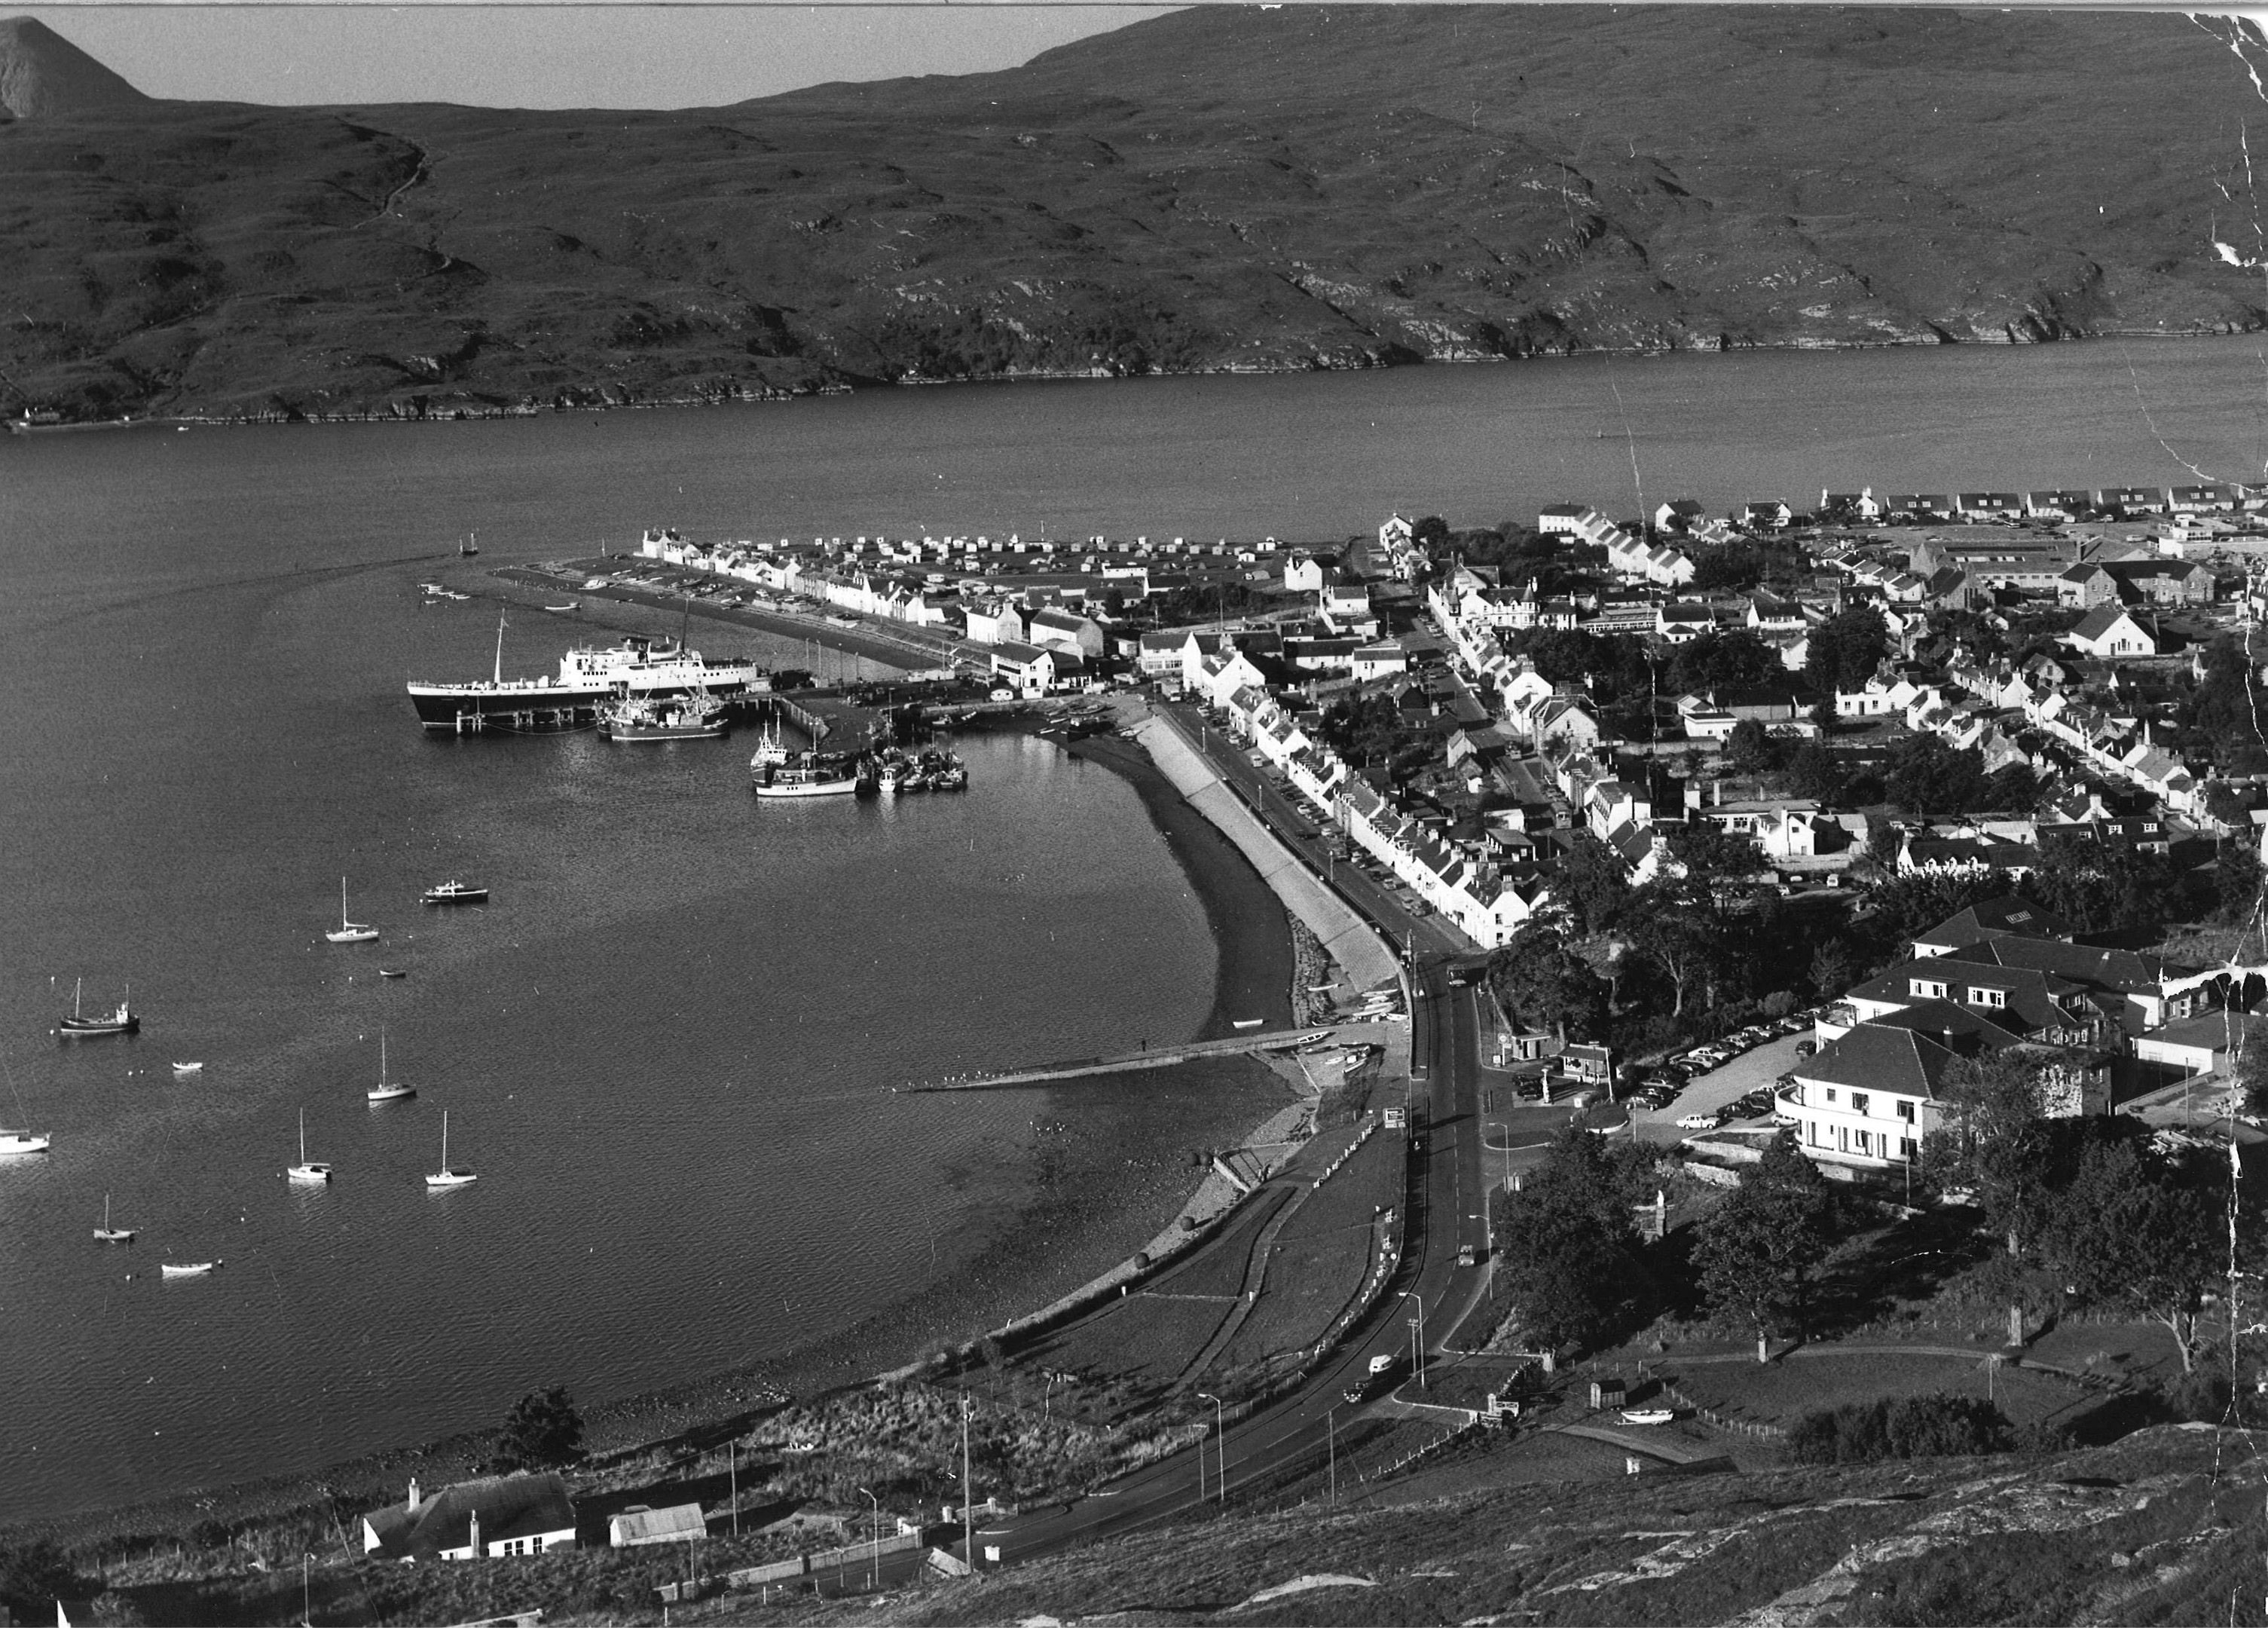 Ullapool shines in the sun. Views taken from the Braes of Ullapool, 1973